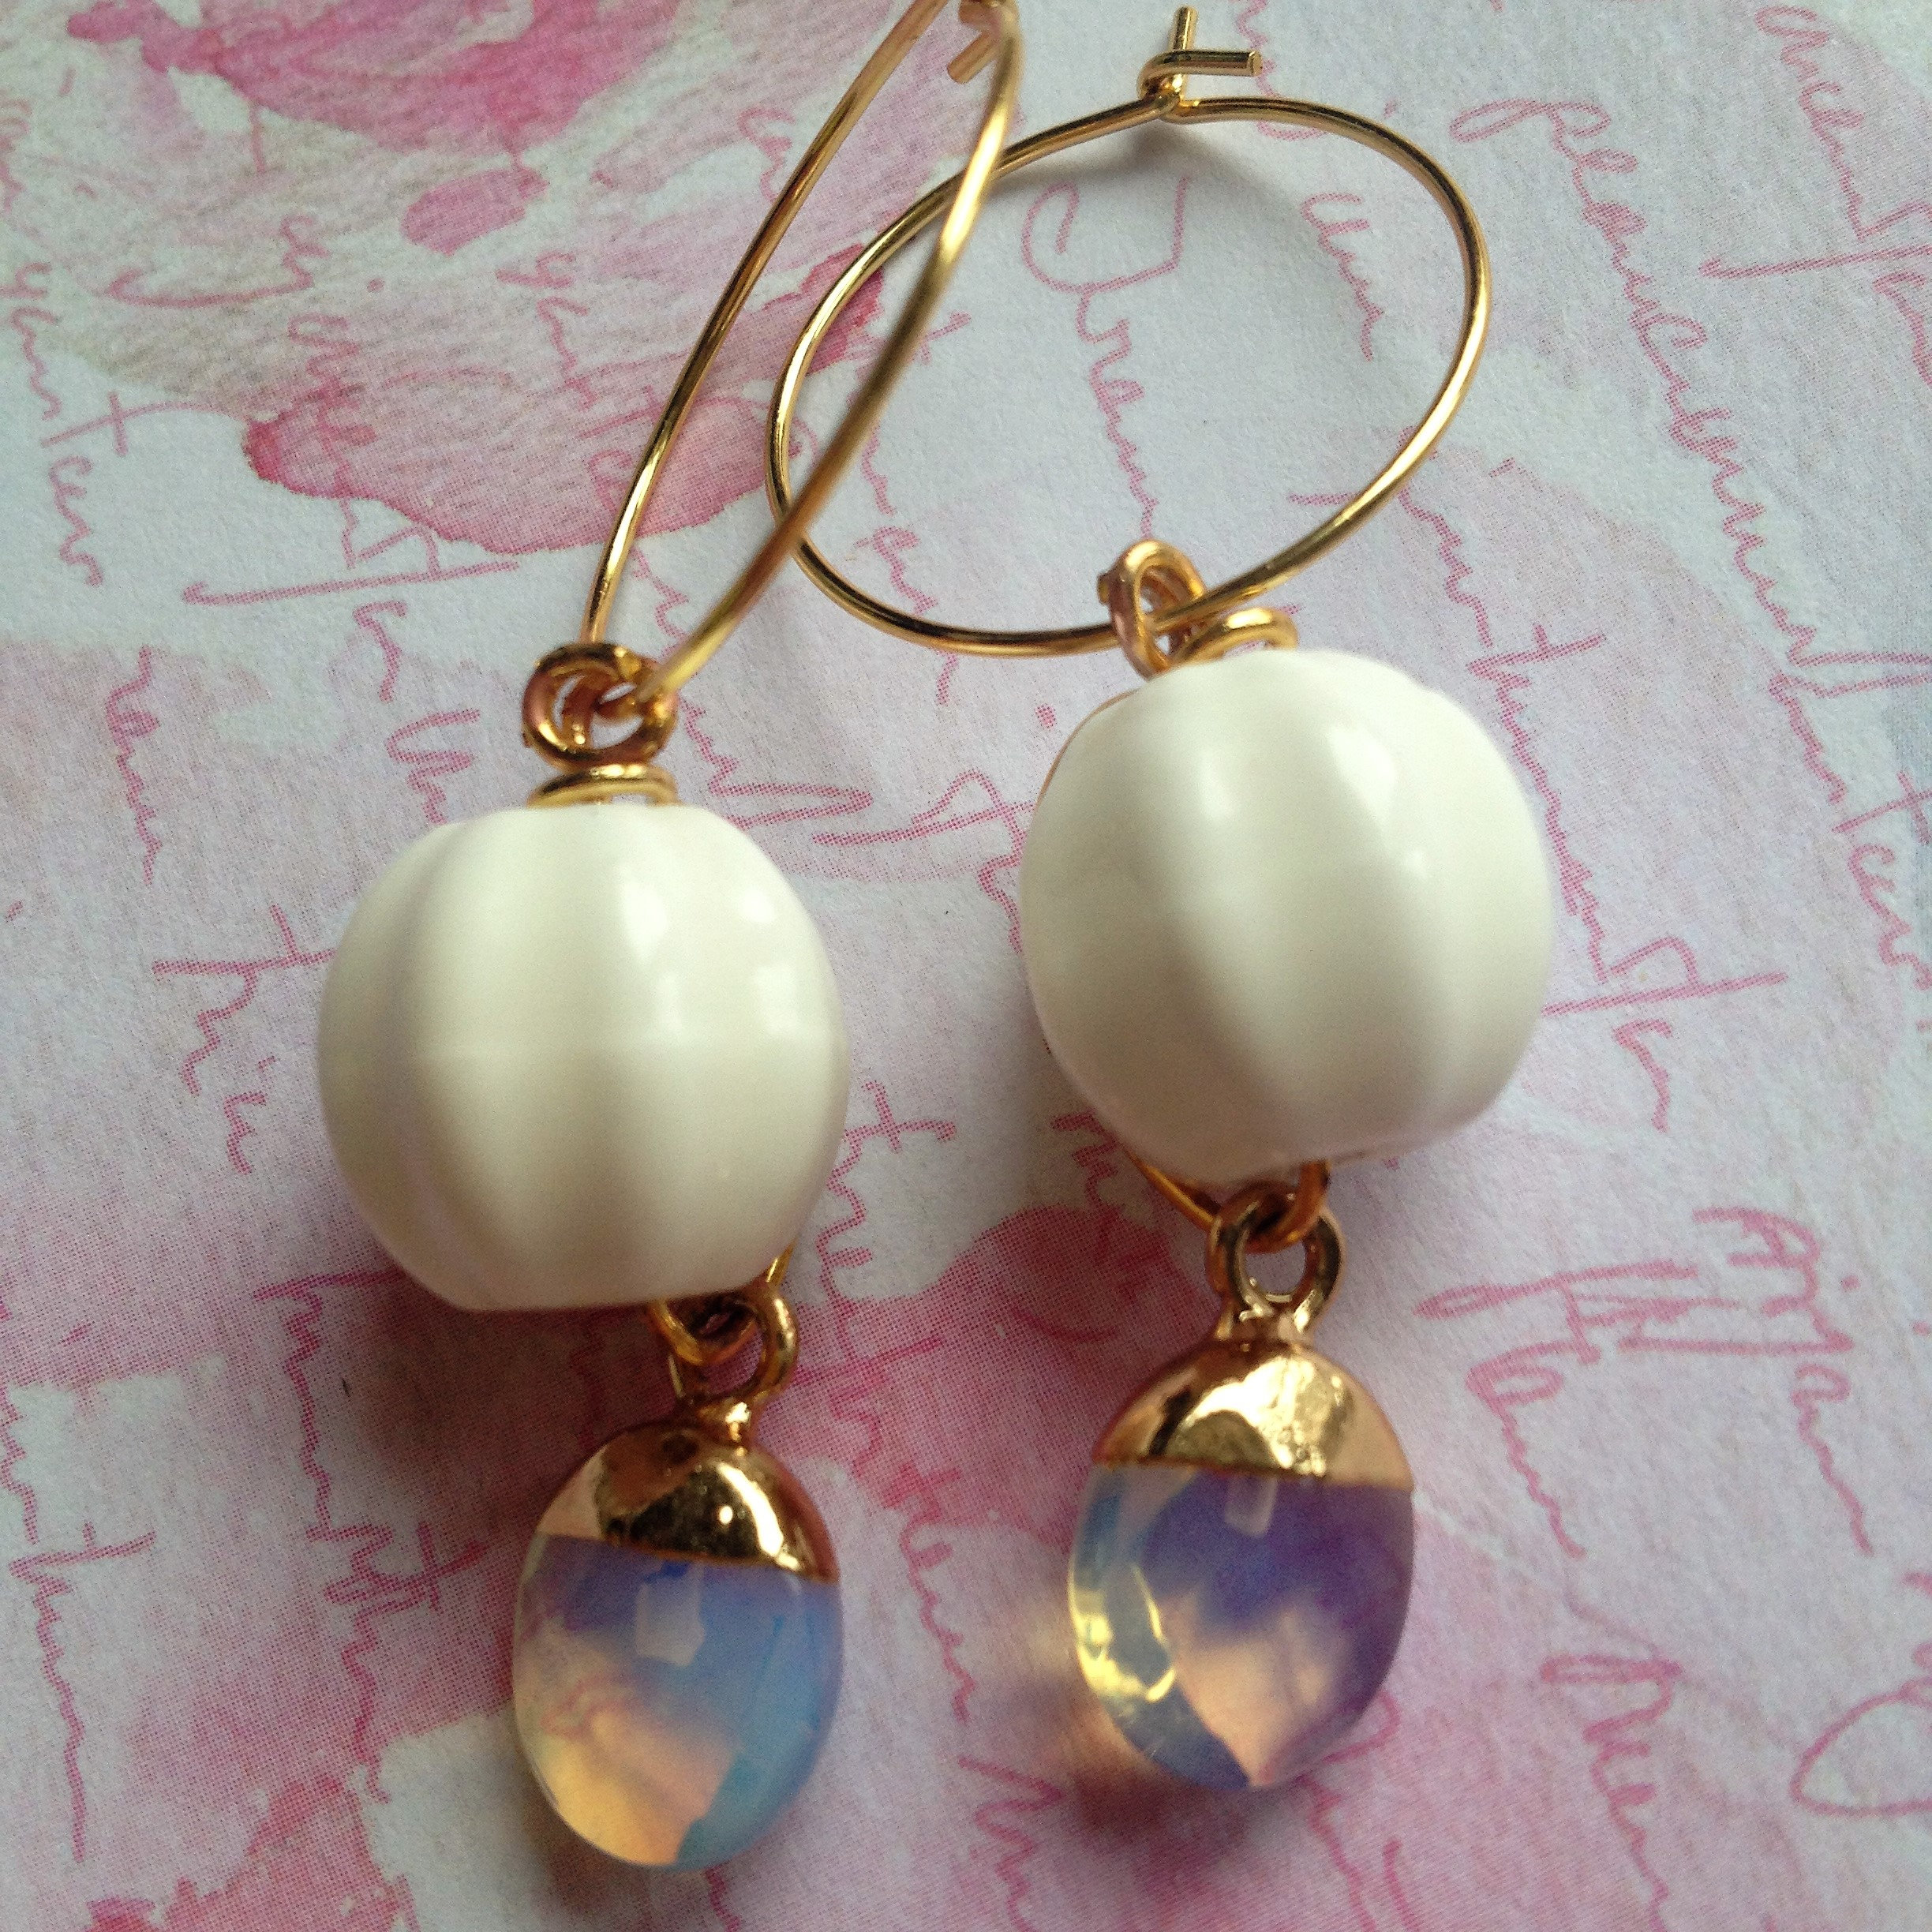 Porcelain earrings with opalescent accents